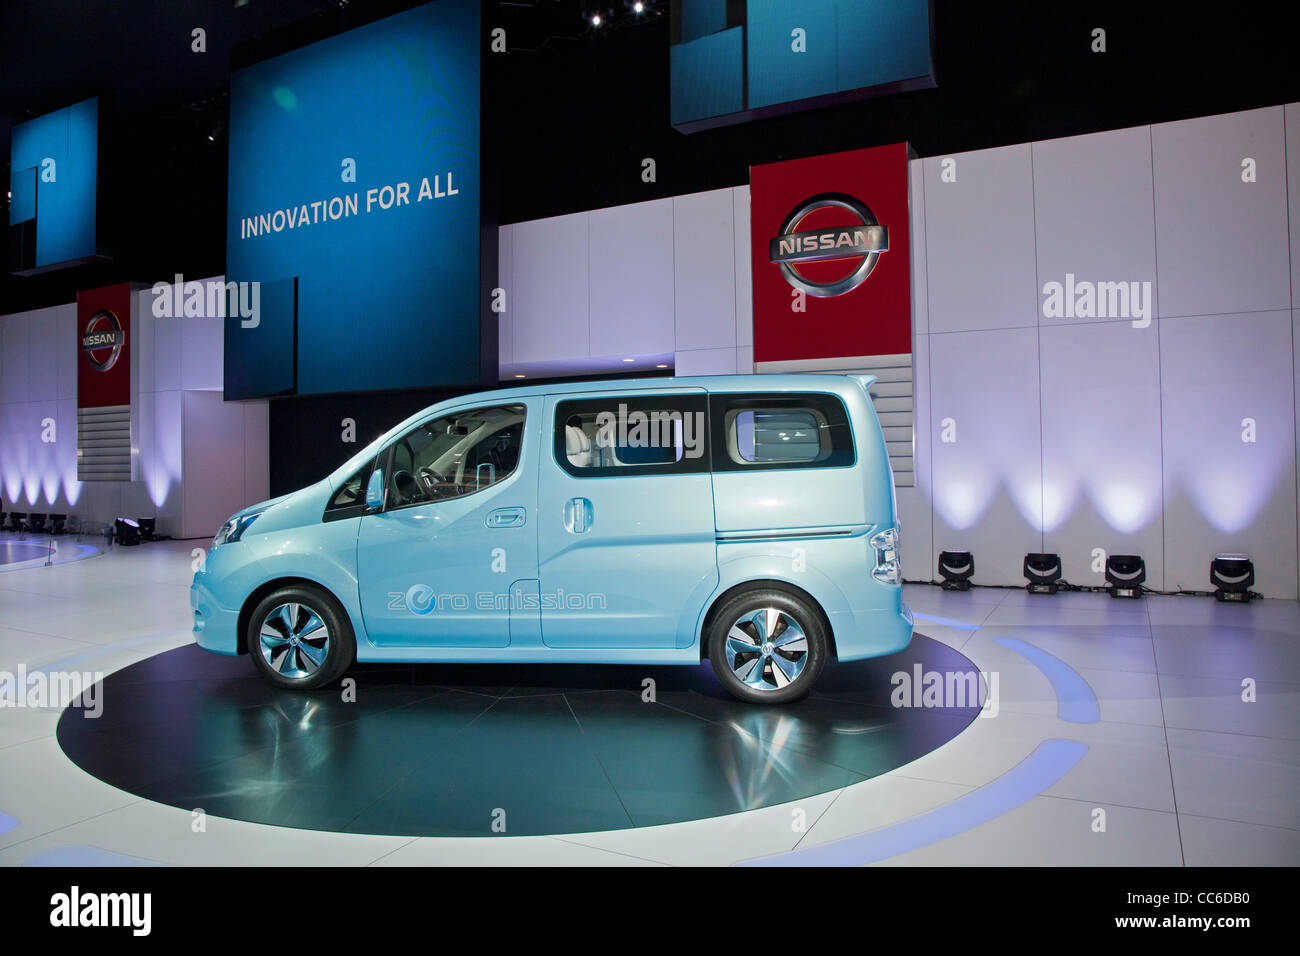 Detroit, Michigan - The Nissan E-NV 200 concept electric van on display at the North American International Auto - Stock Image